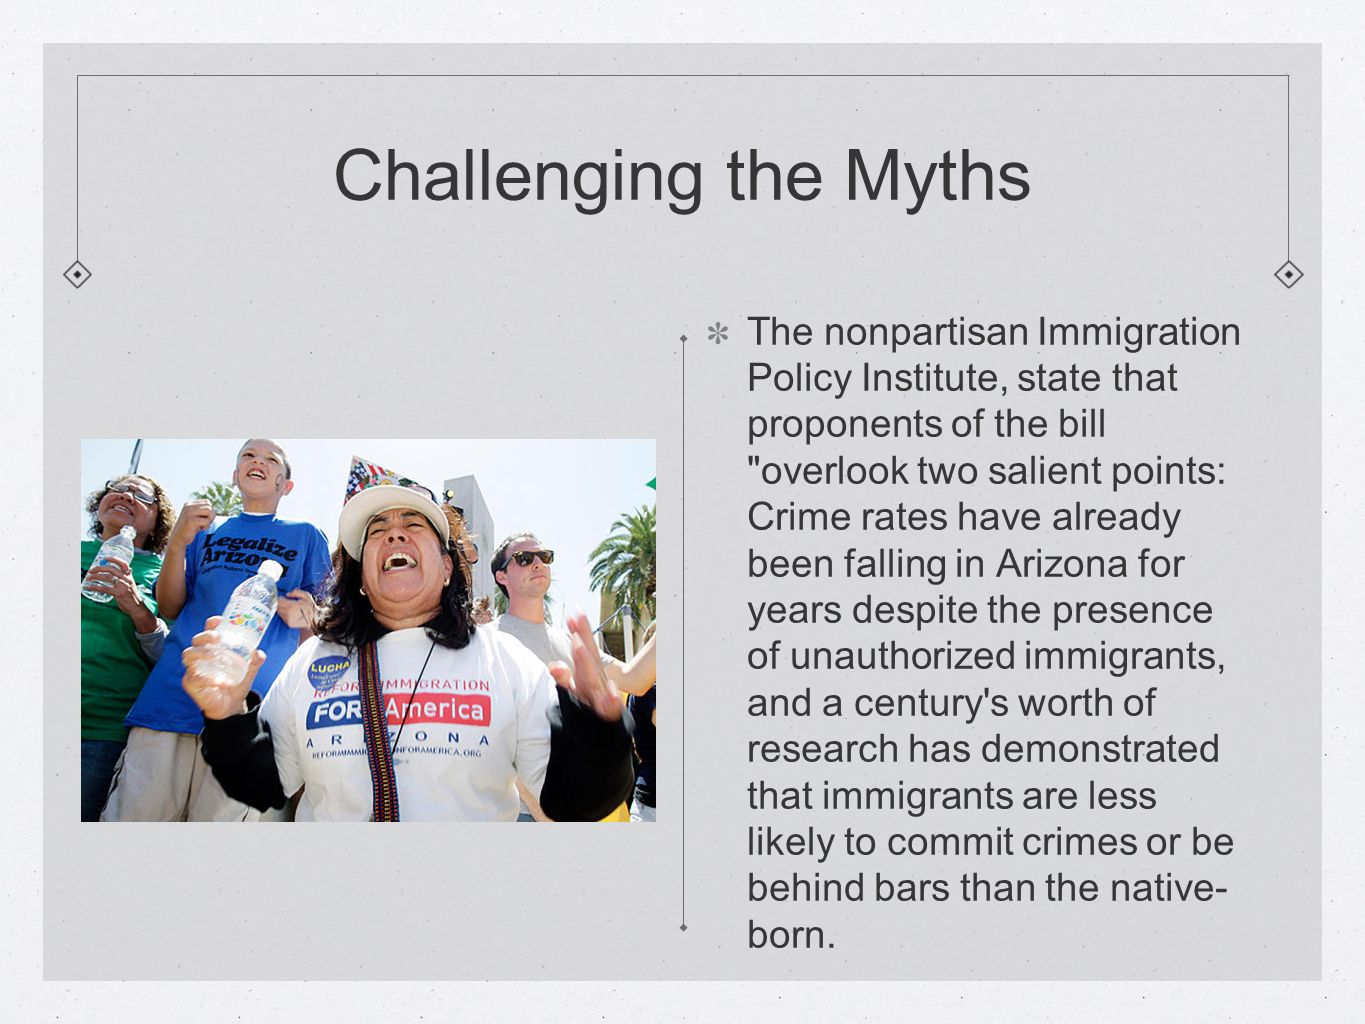 Challenging the Myths The nonpartisan Immigration Policy Institute, state that proponents of the bill overlook two salient points: Crime rates have already been falling in Arizona for years despite the presence of unauthorized immigrants, and a century s worth of research has demonstrated that immigrants are less likely to commit crimes or be behind bars than the native- born.